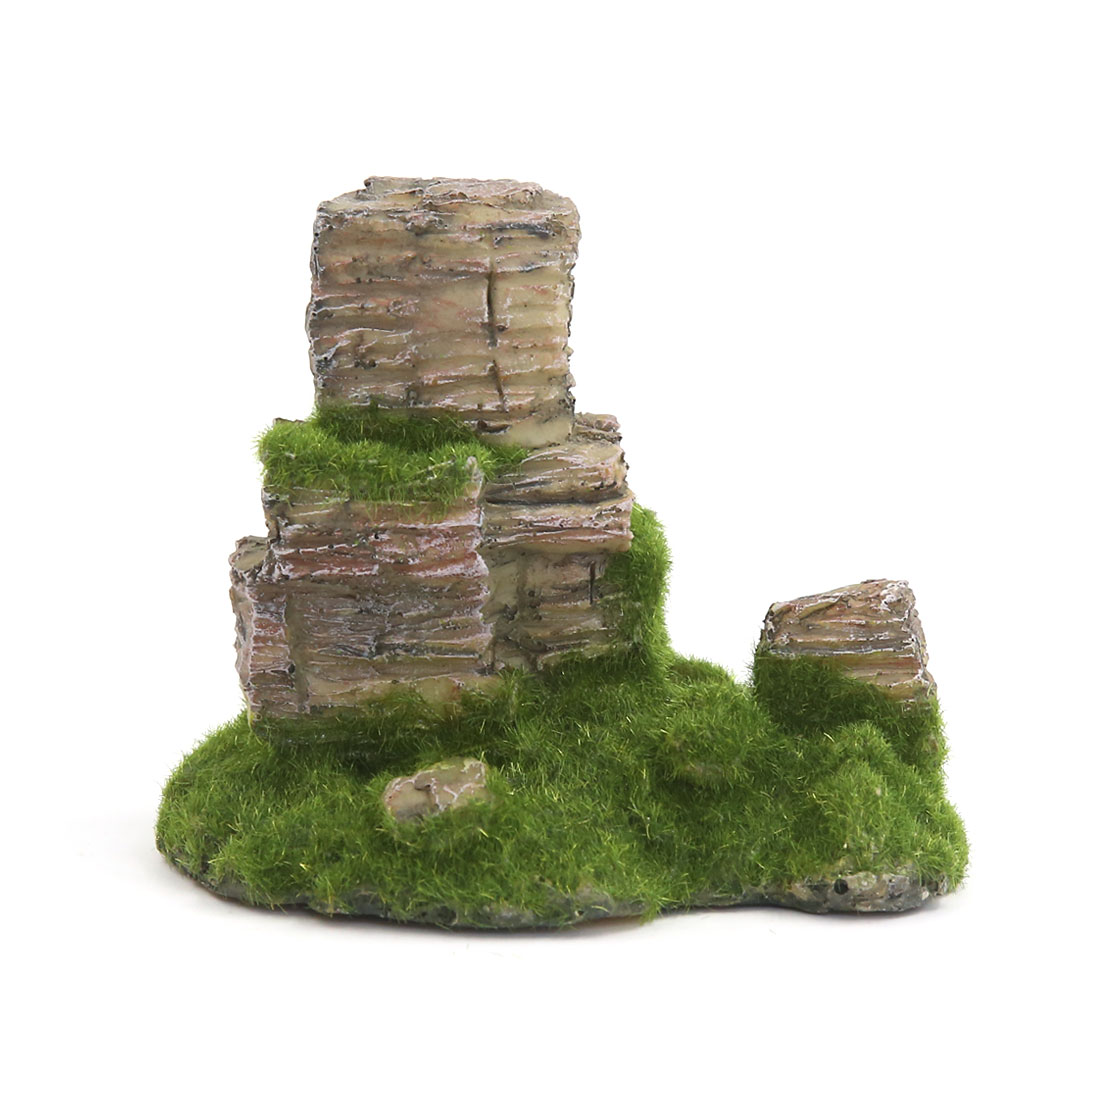 Aqua Landscape Artificial Tree Mountain Decoration 11x8x10cm